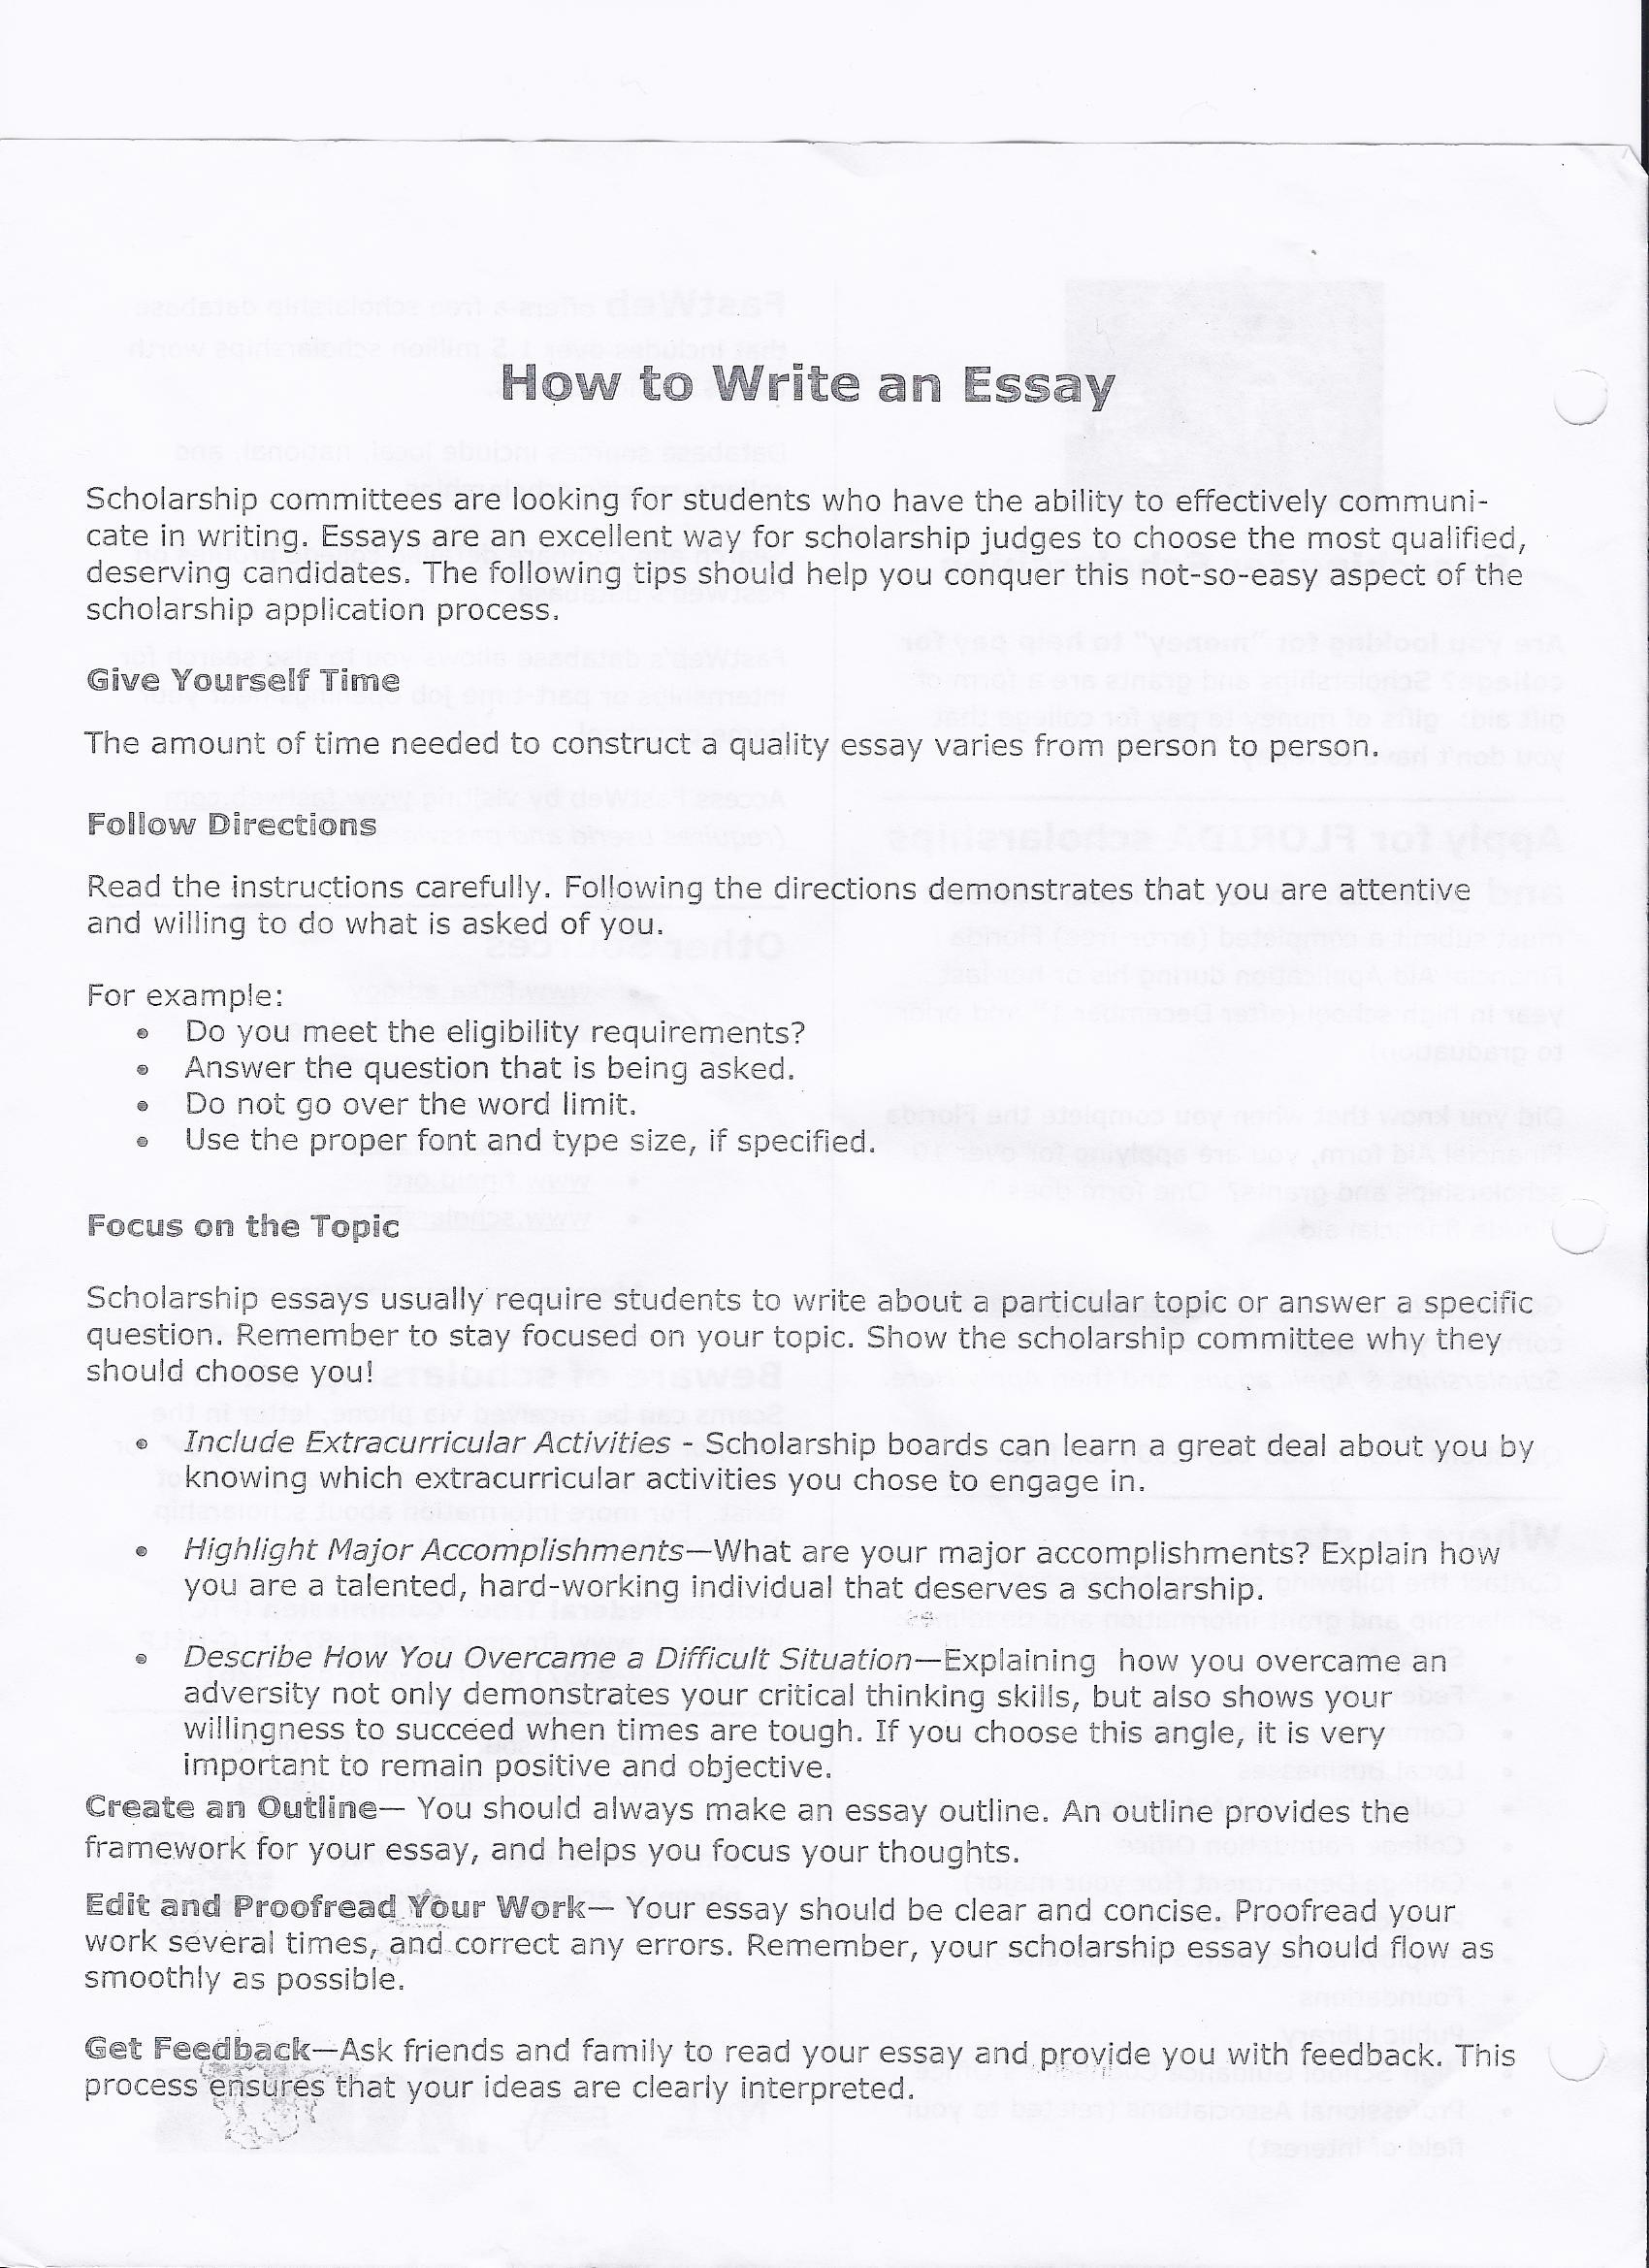 english essay writing help online college essay homework help online college essay homework help encyclopediaall over the world college students are in need of professional